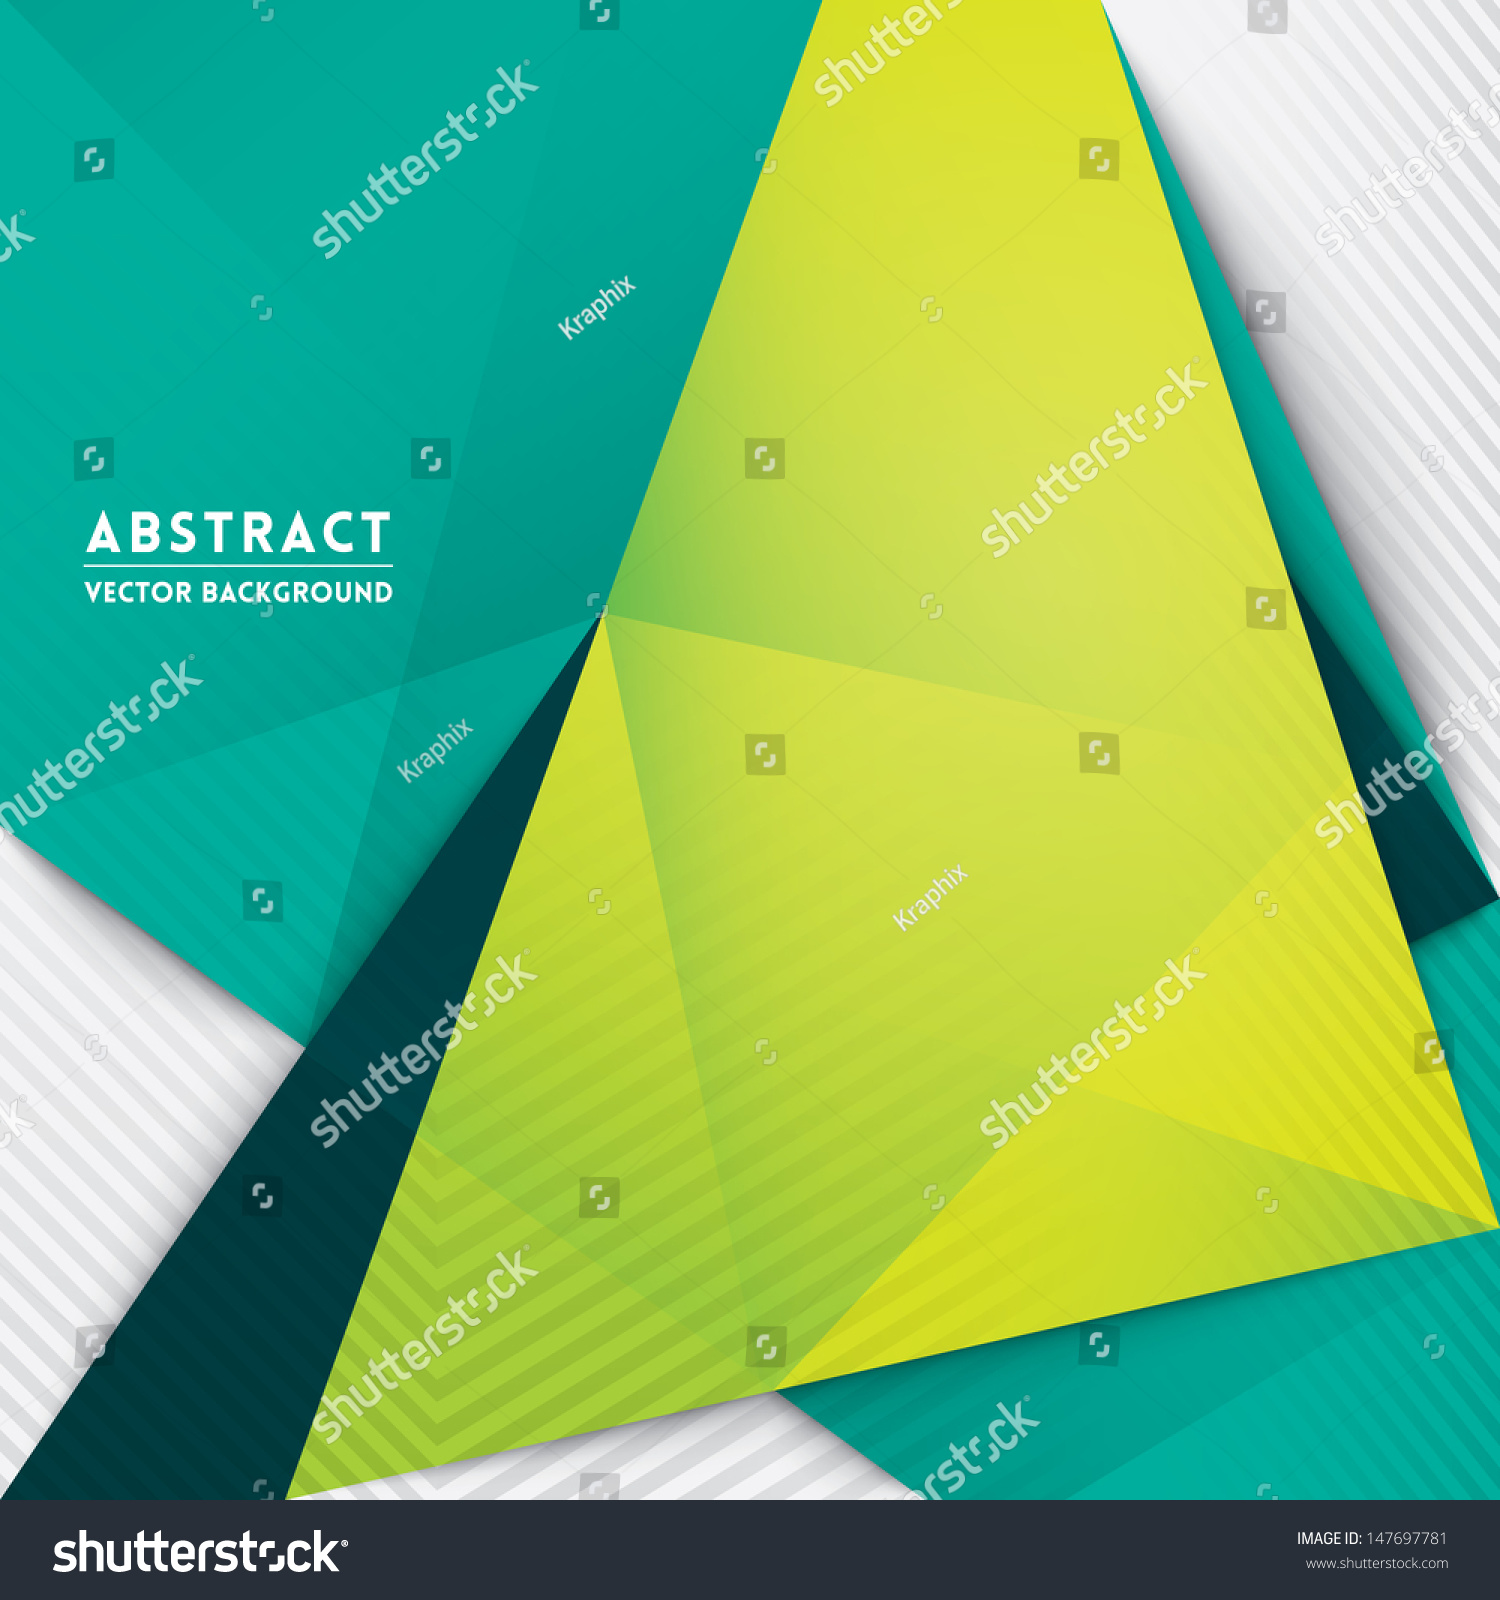 Book Cover Background Java : Abstract triangle shape background web design stock vector